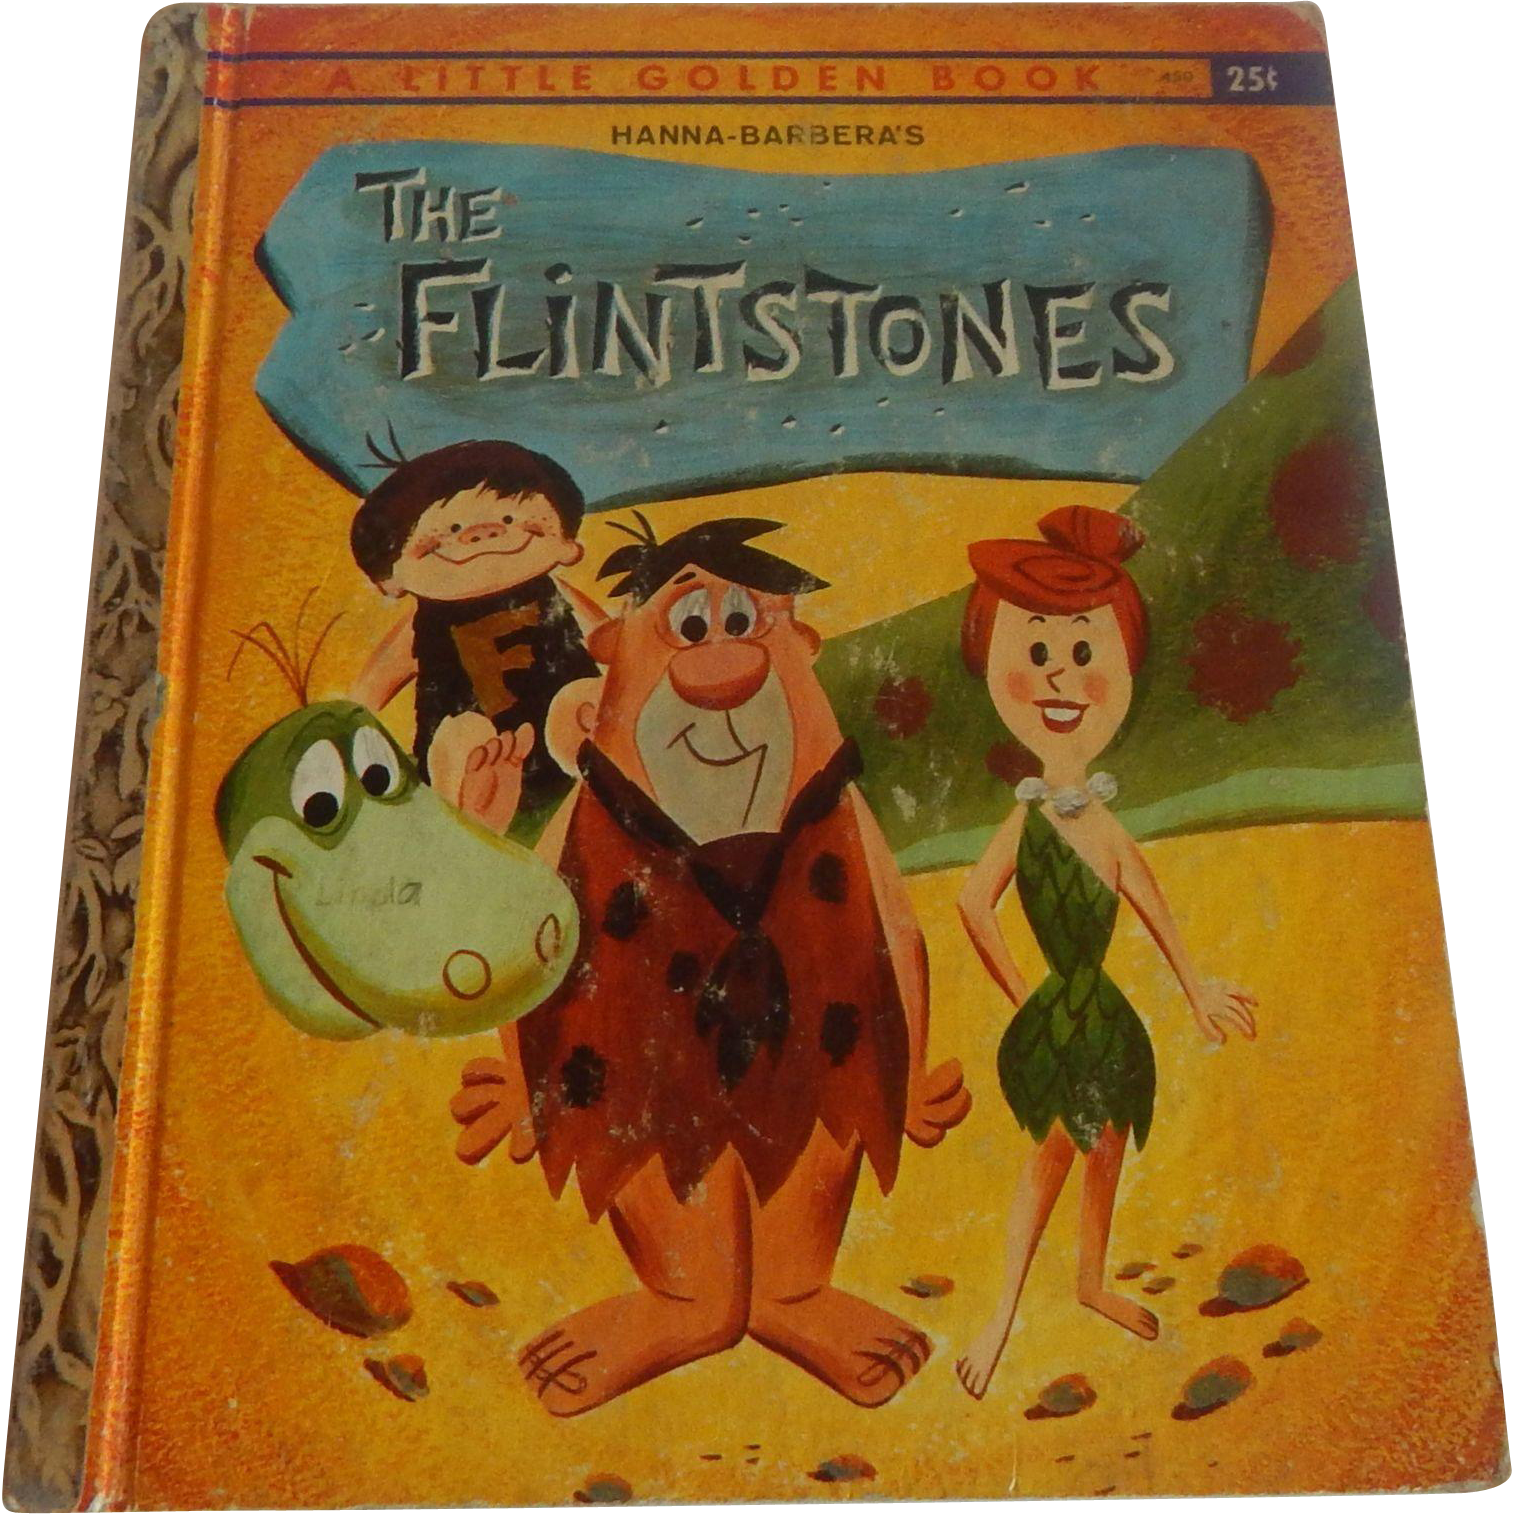 A Little Golden Book Hanna-Barbera's The Flintstones